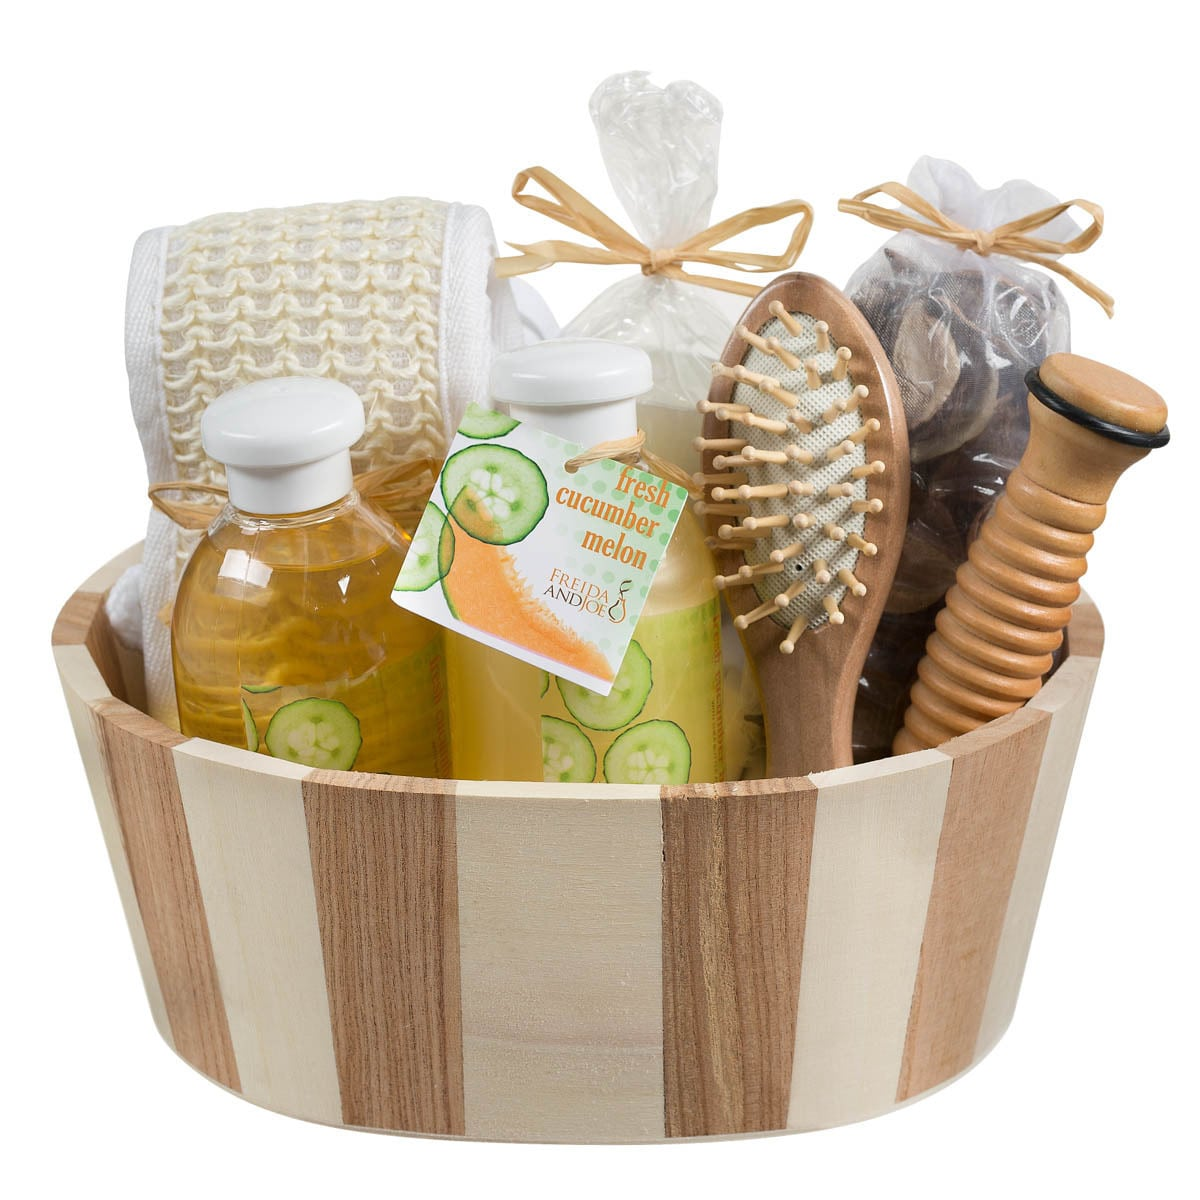 Gift Baskets | Shop our Best Food & Gifts Deals Online at Overstock.com